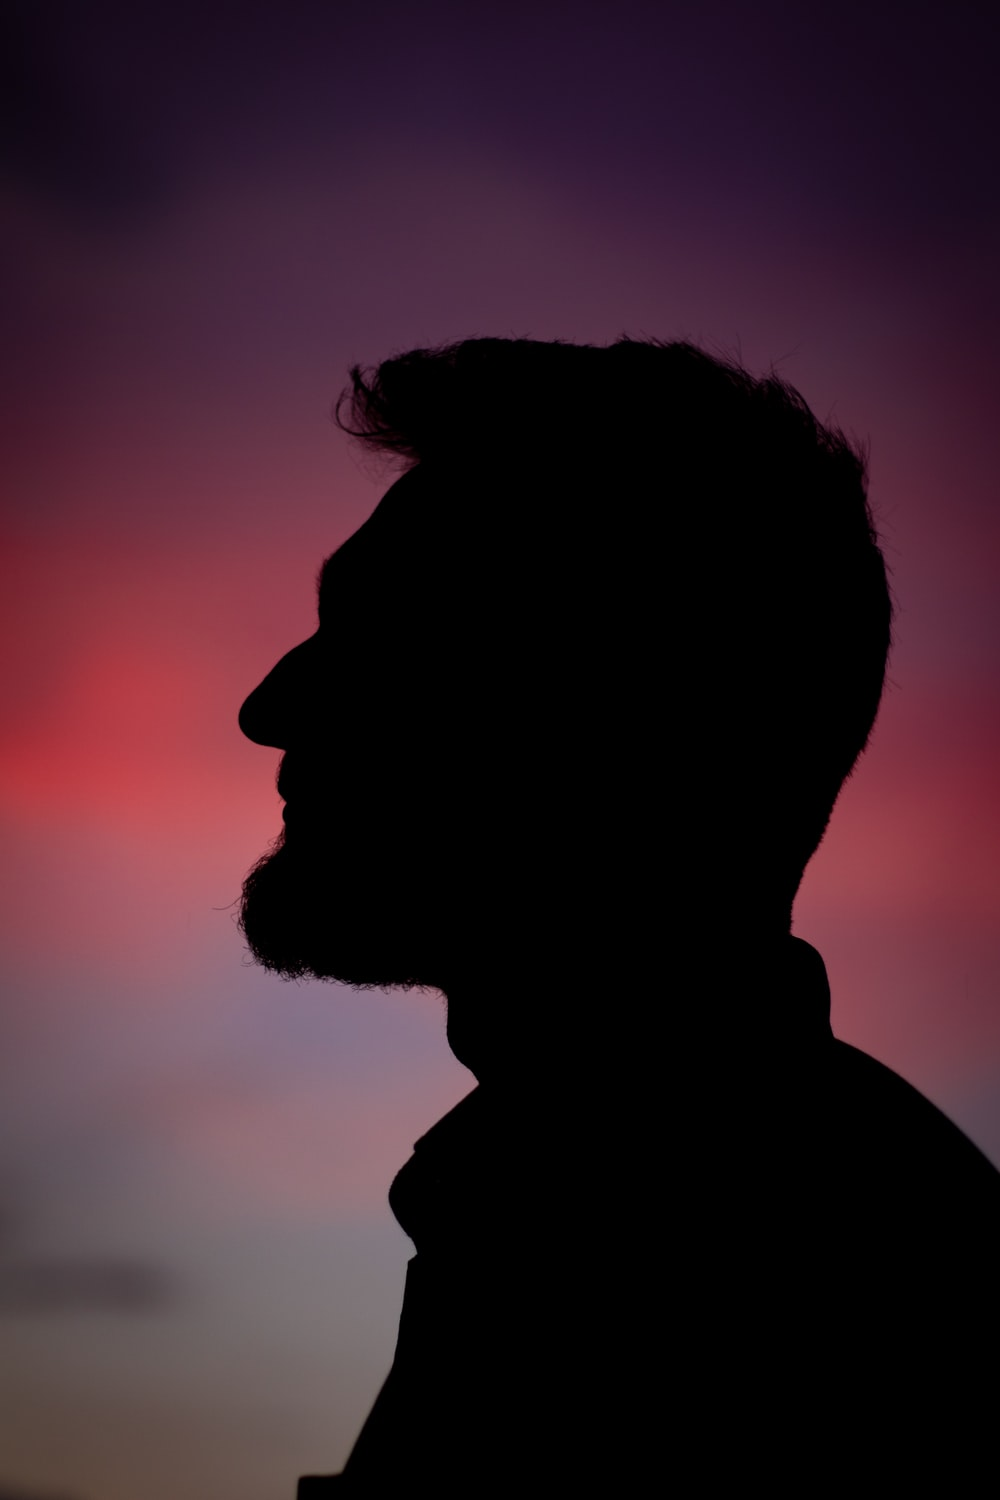 silhouette of man during dusk